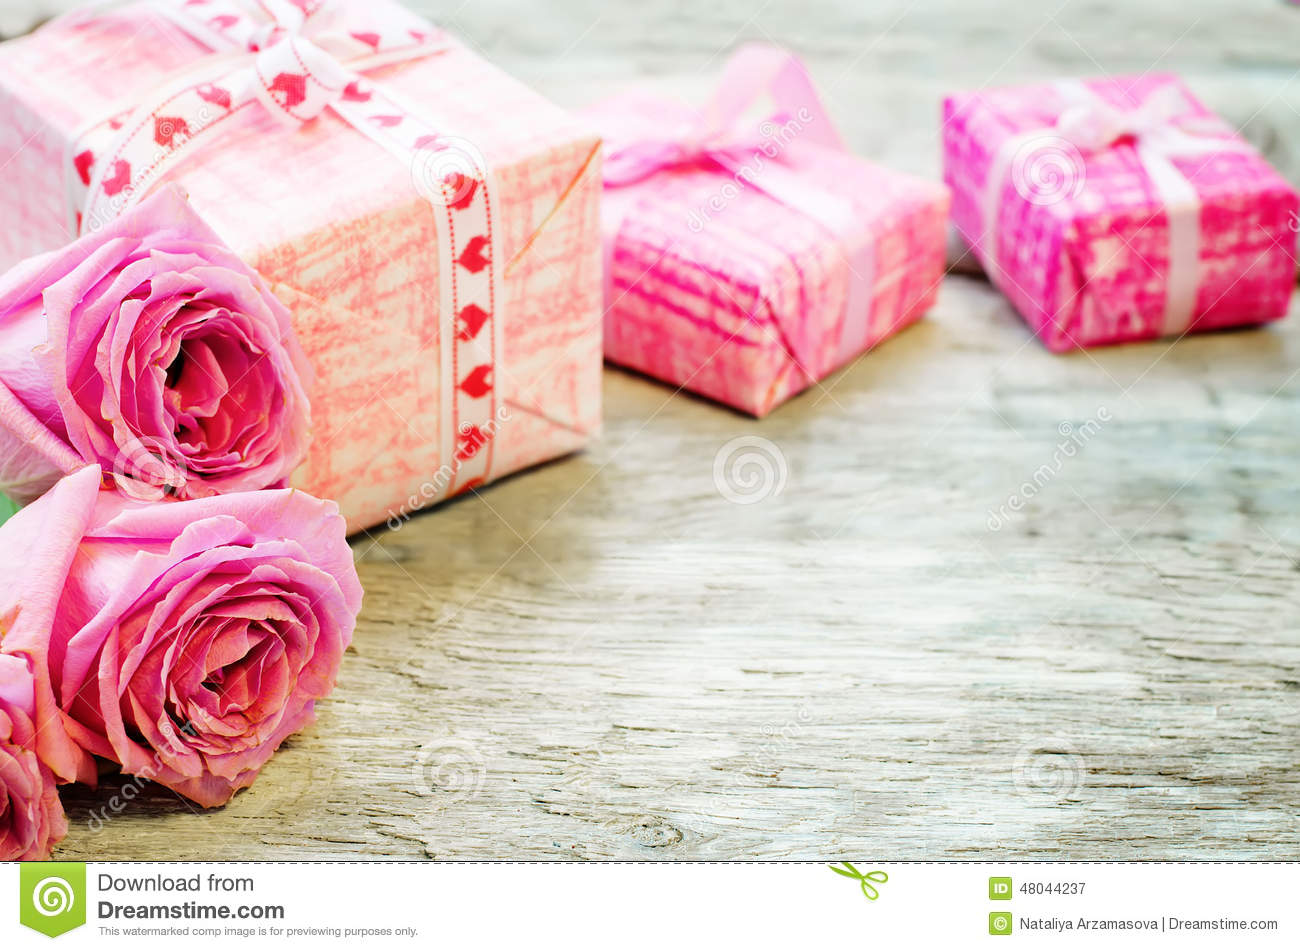 Valentines background with gifts and flowers stock image image of valentines background with gifts and flowers stock image image of romantic happiness 48044237 negle Choice Image